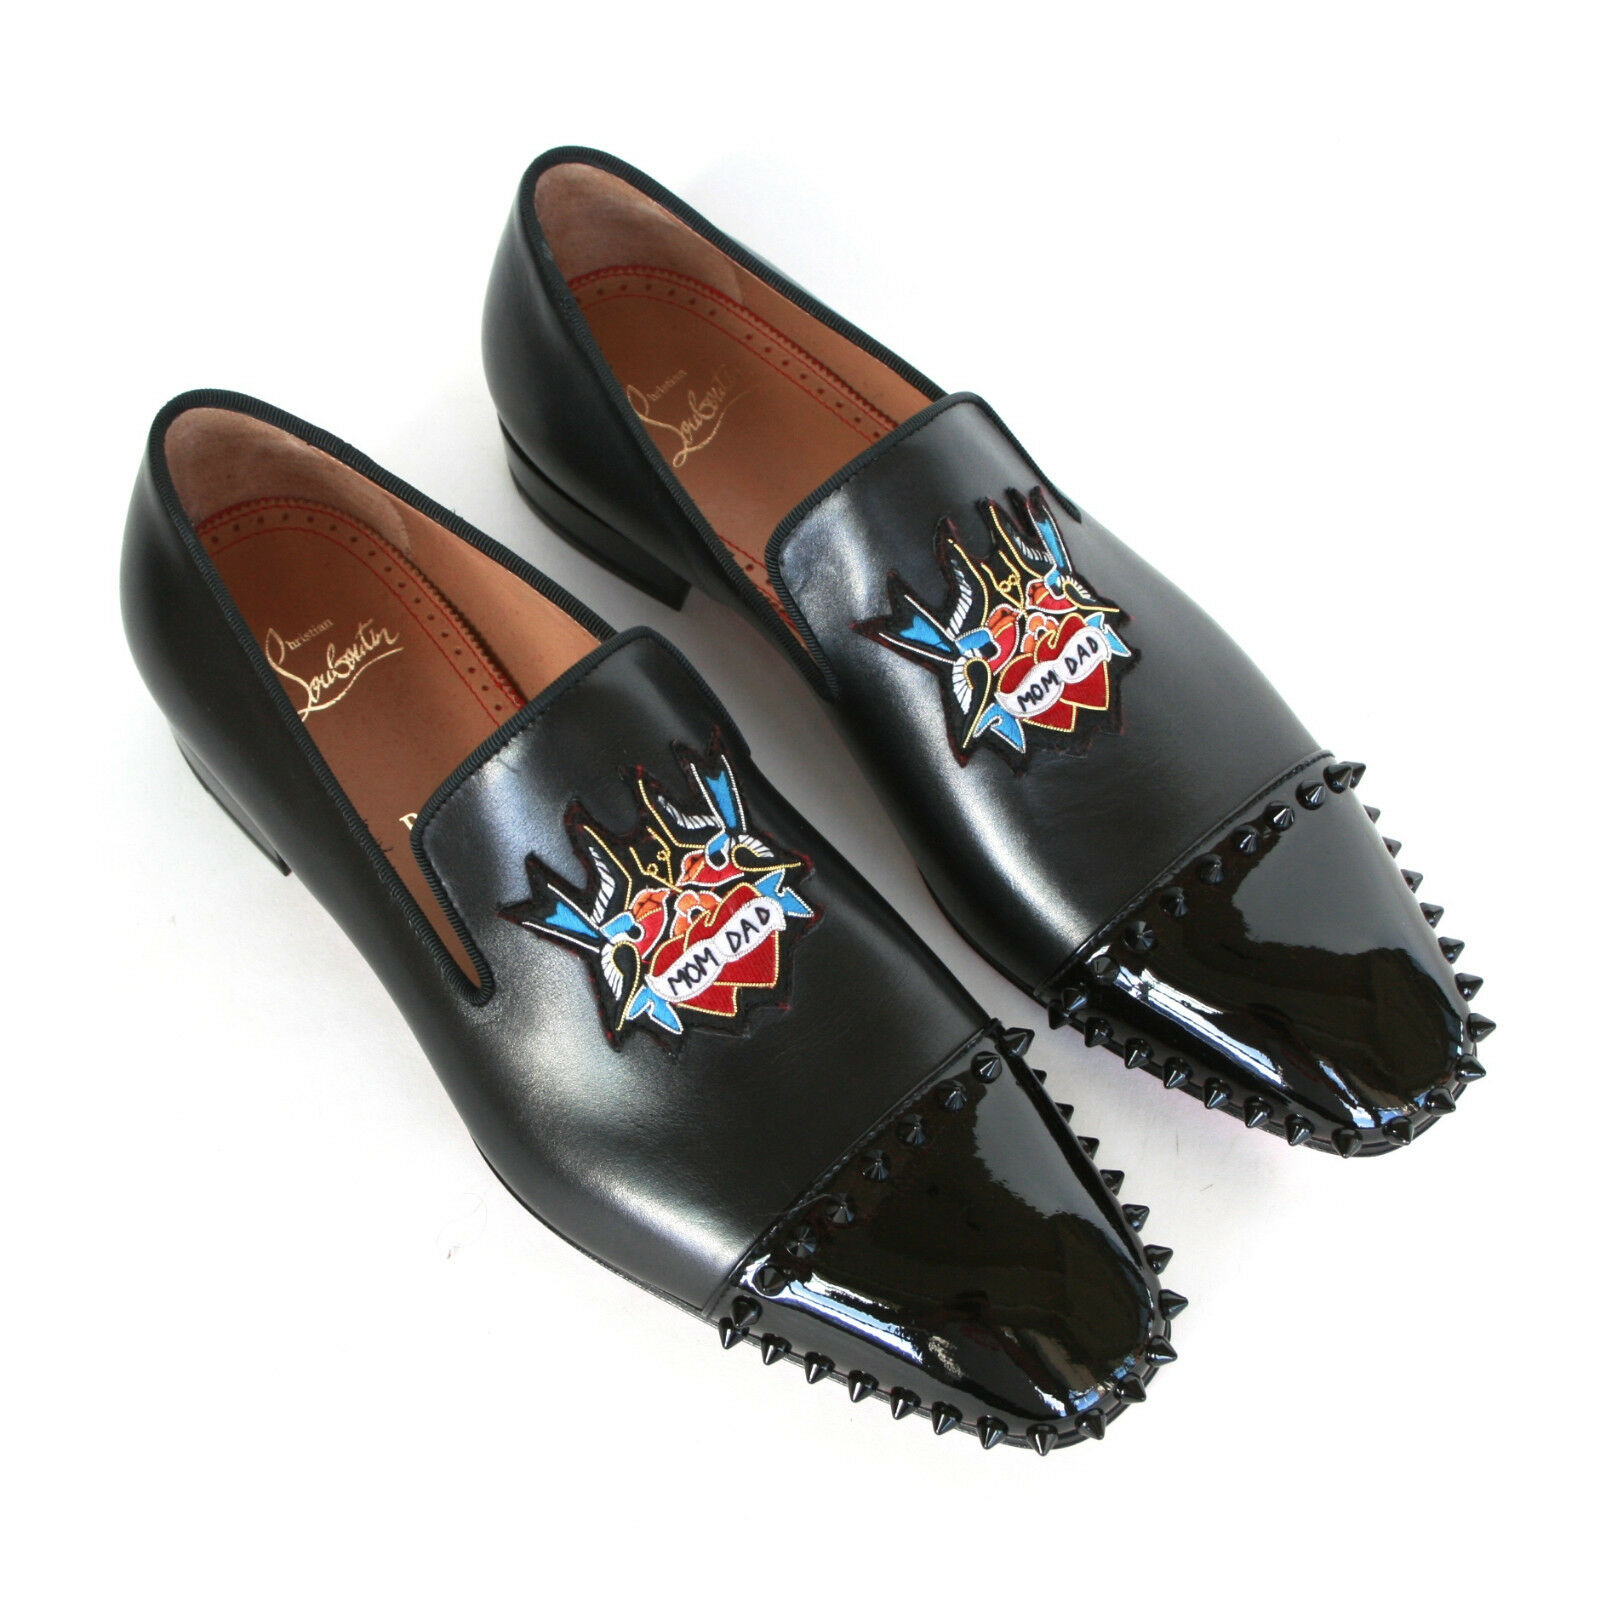 competitive price 20bcc 45aed Christian Louboutin Mens Studded Captain Daddy Loafers Spike Stud Shoes  41/8 for sale online | eBay